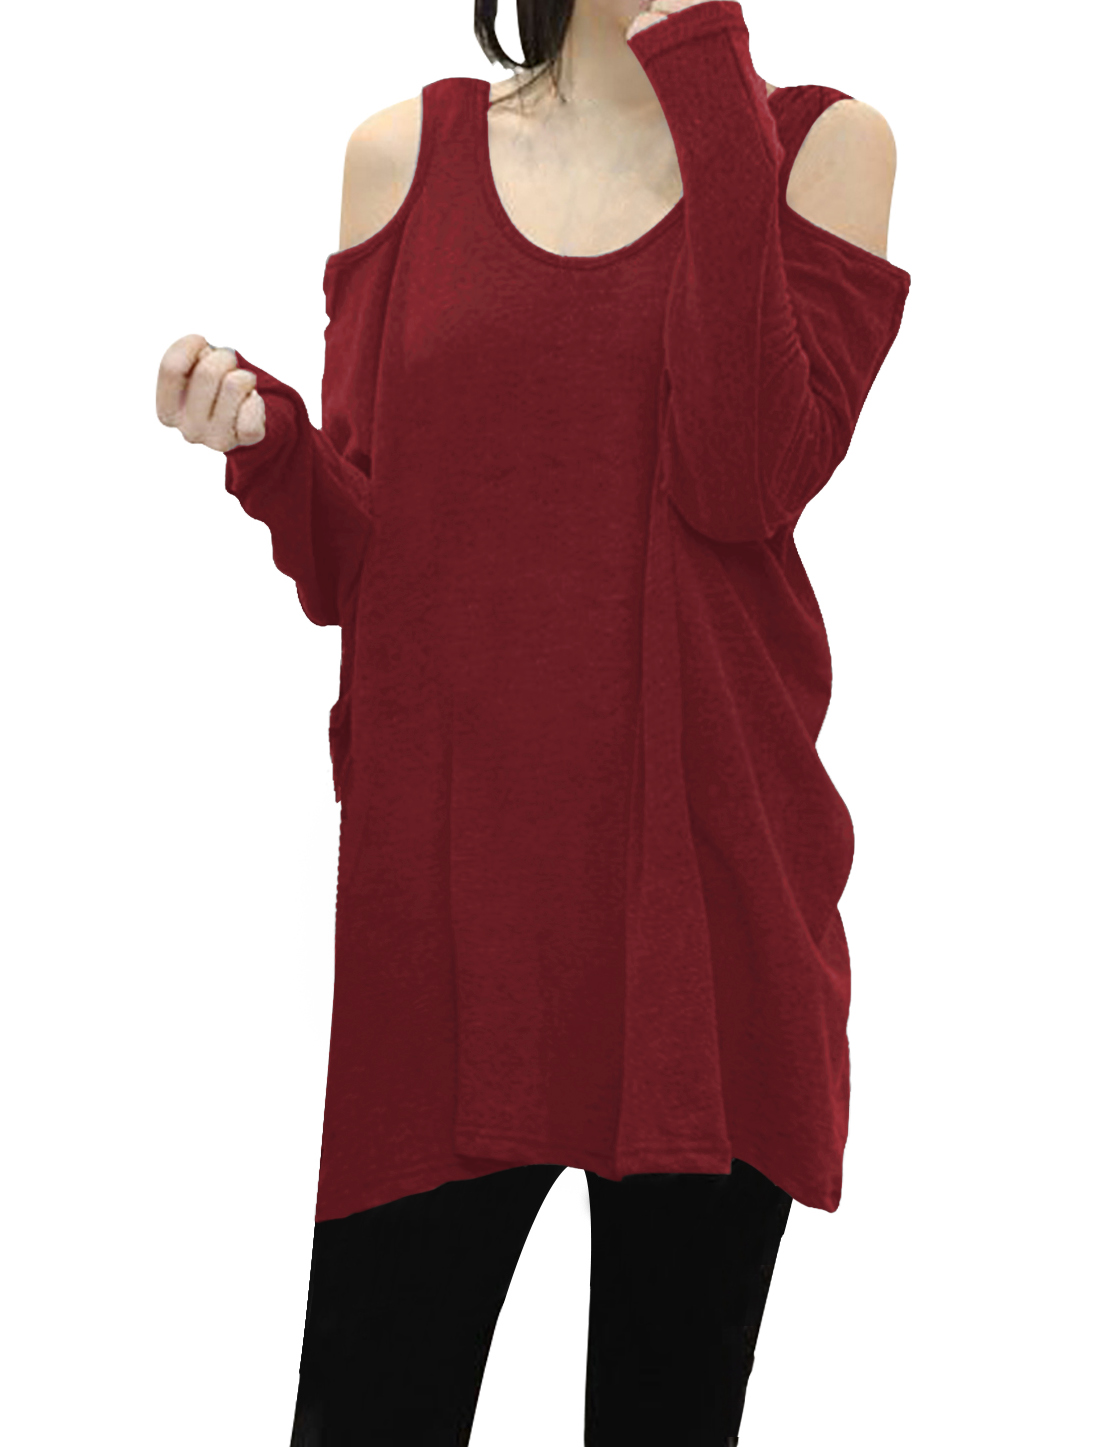 Ladies Scoop Neck Cut Out Shoulder Oversized Tunic Top Red L